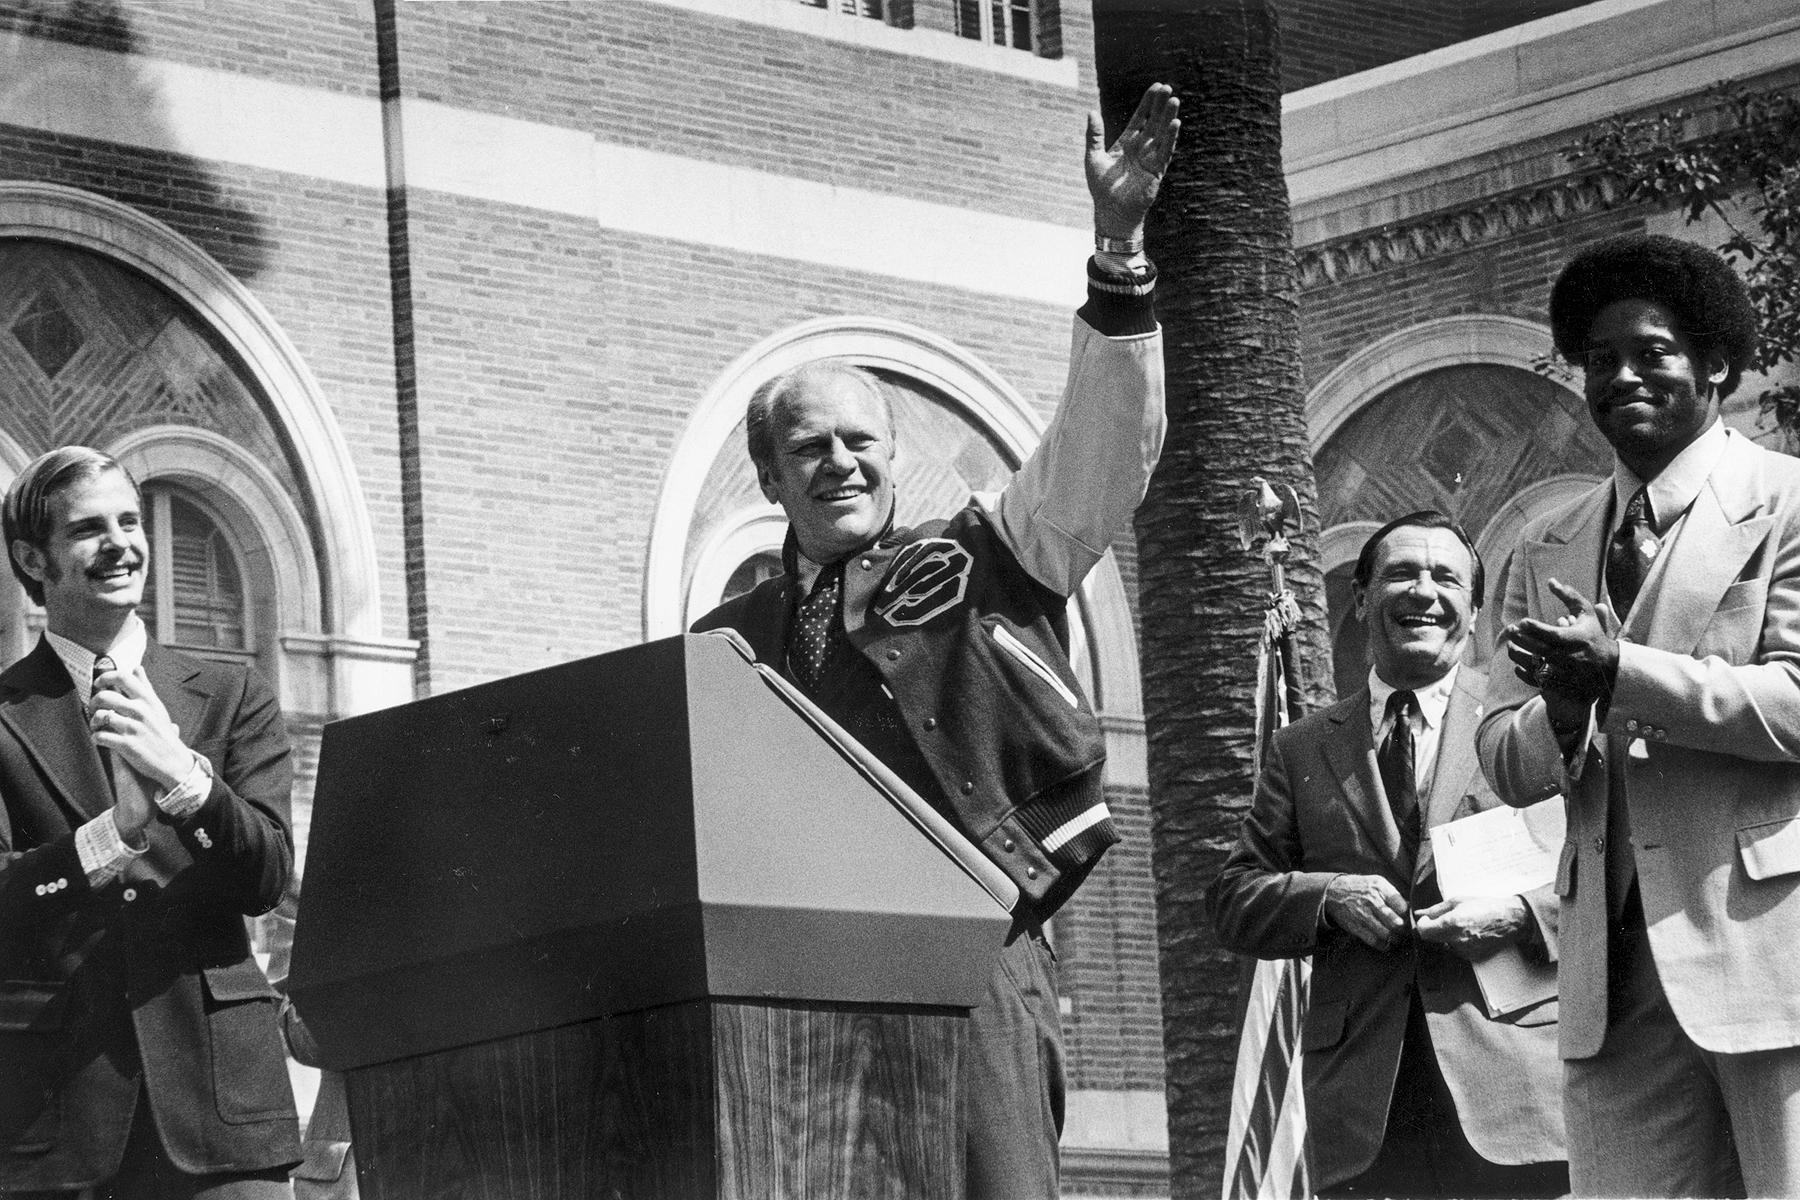 Gerald R. Ford, 38th president of the United States, makes a campaign visit to USC